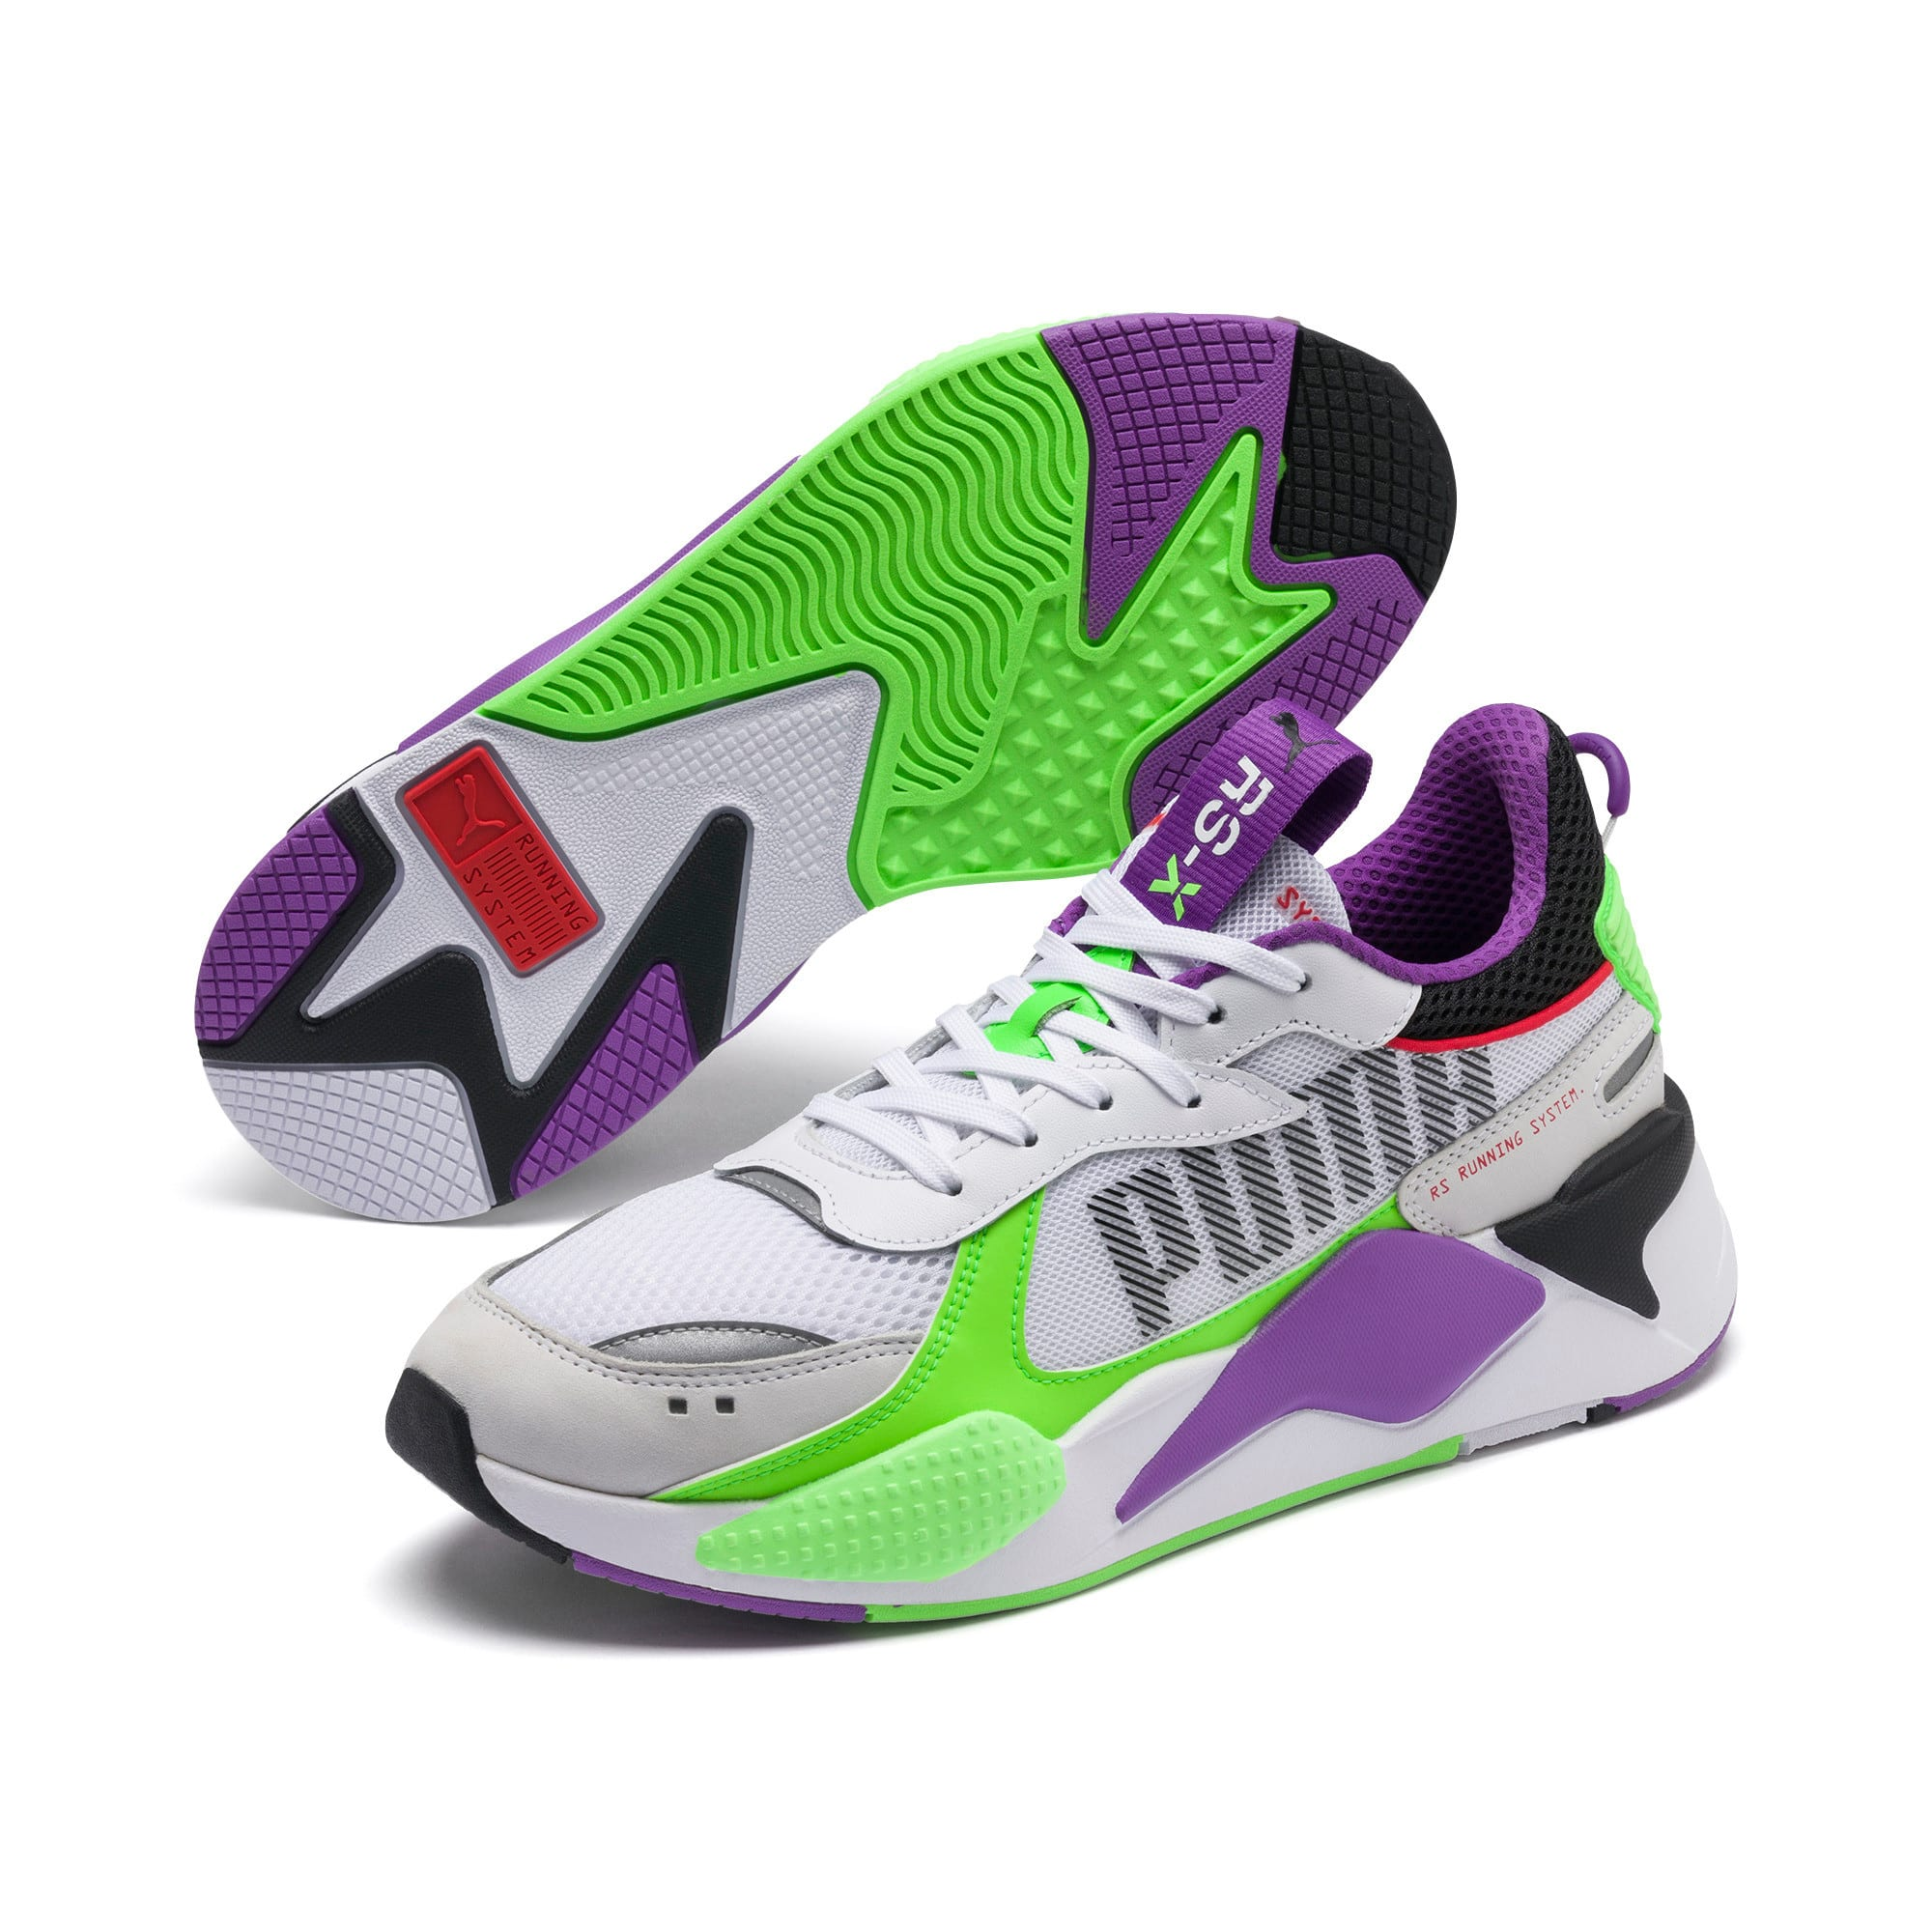 Thumbnail 2 of RS-X Bold Trainers, PWhite-Gr Gecko-Royal Lilac, medium